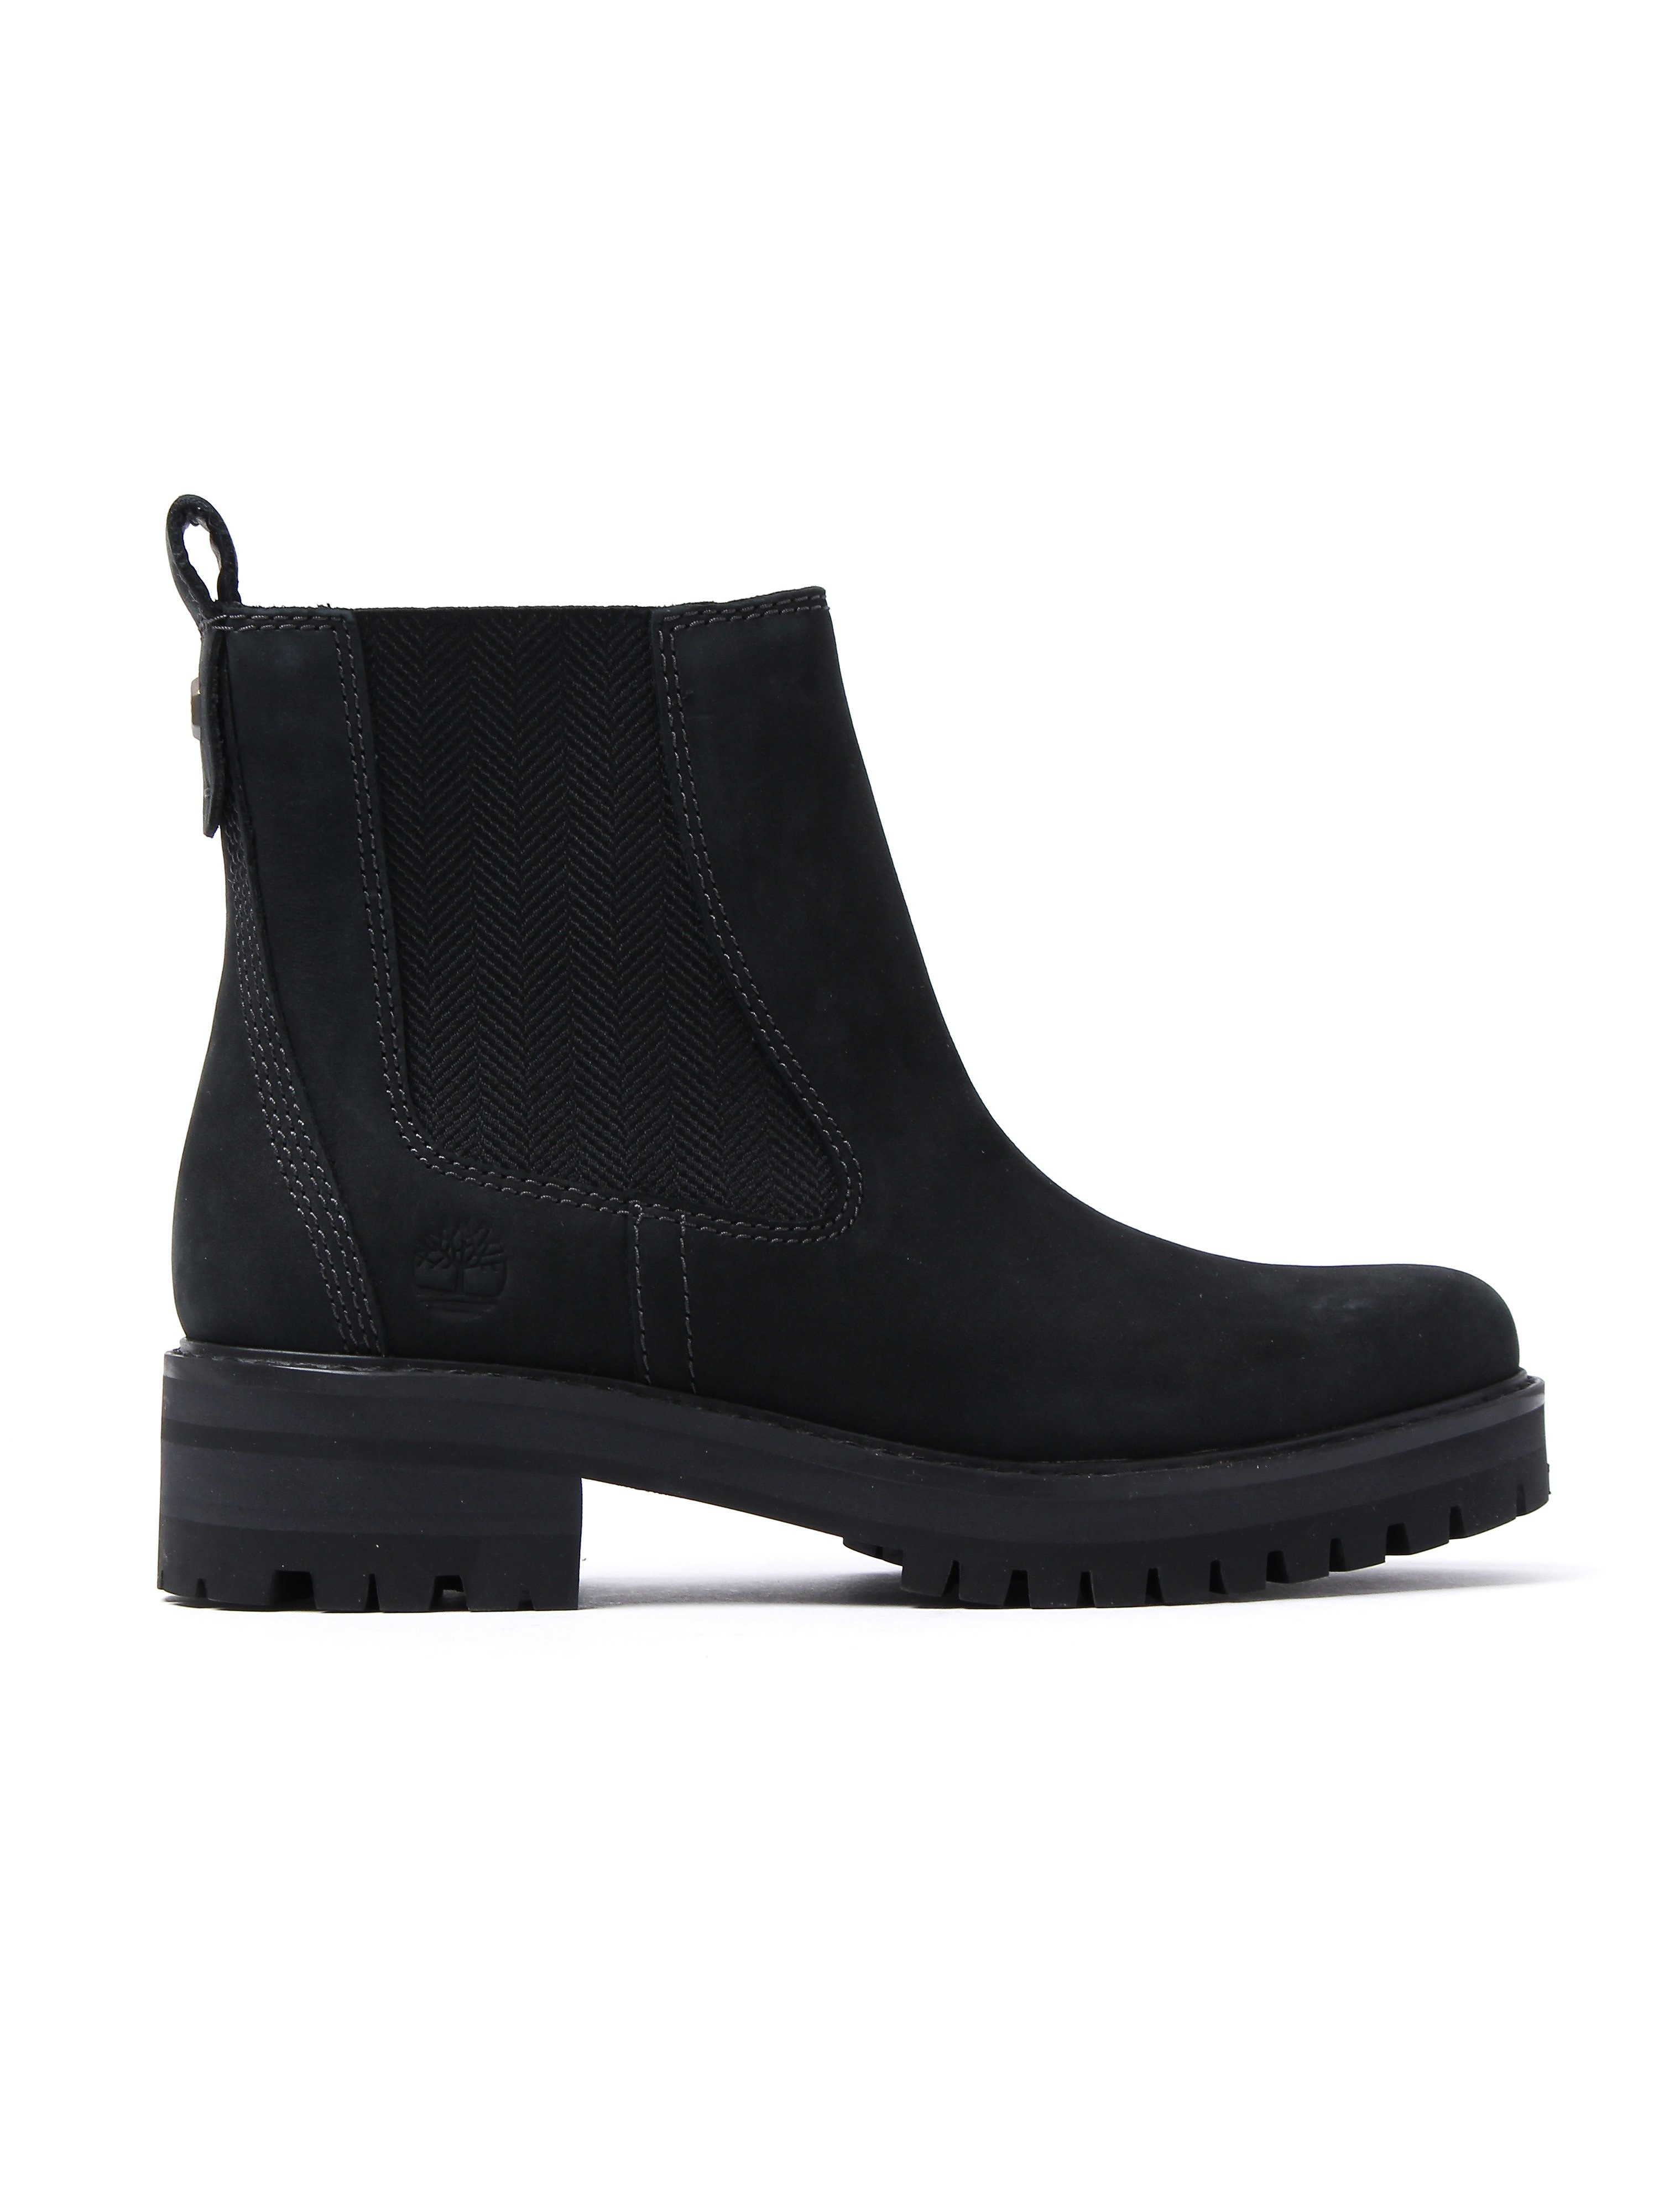 Timberland Women's Courmayeur Valley Chelsea Boots – Black